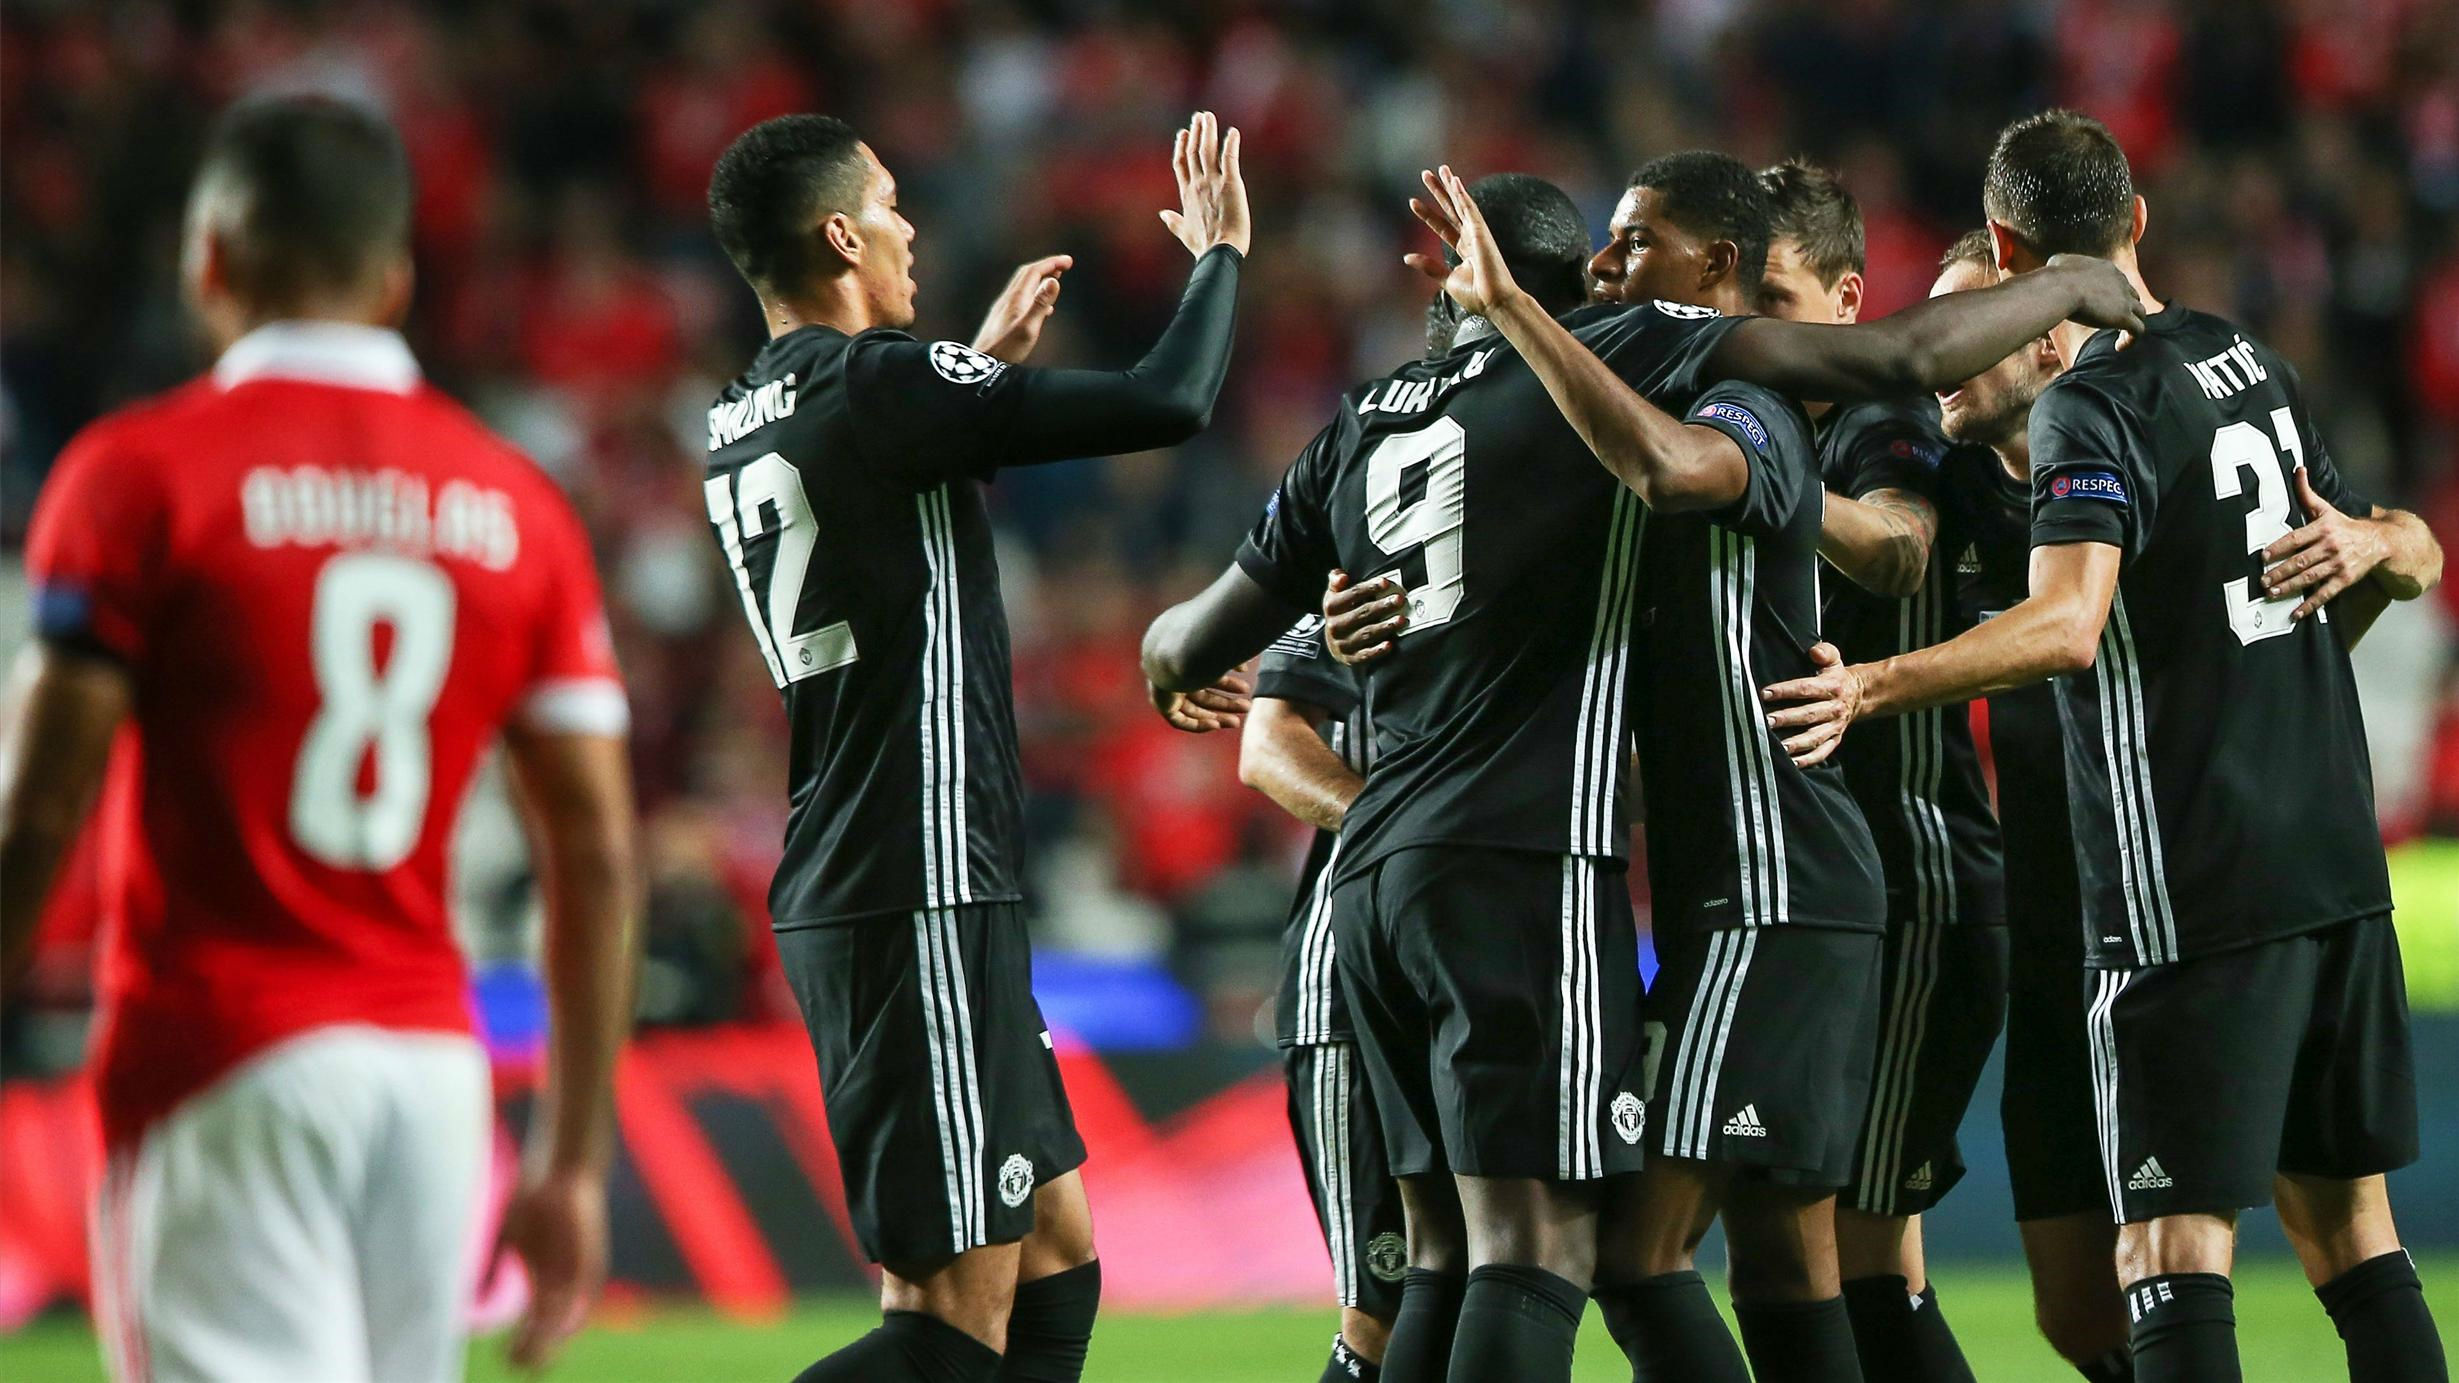 LACHAMPIONS   Benfica - Manchester United (0-1